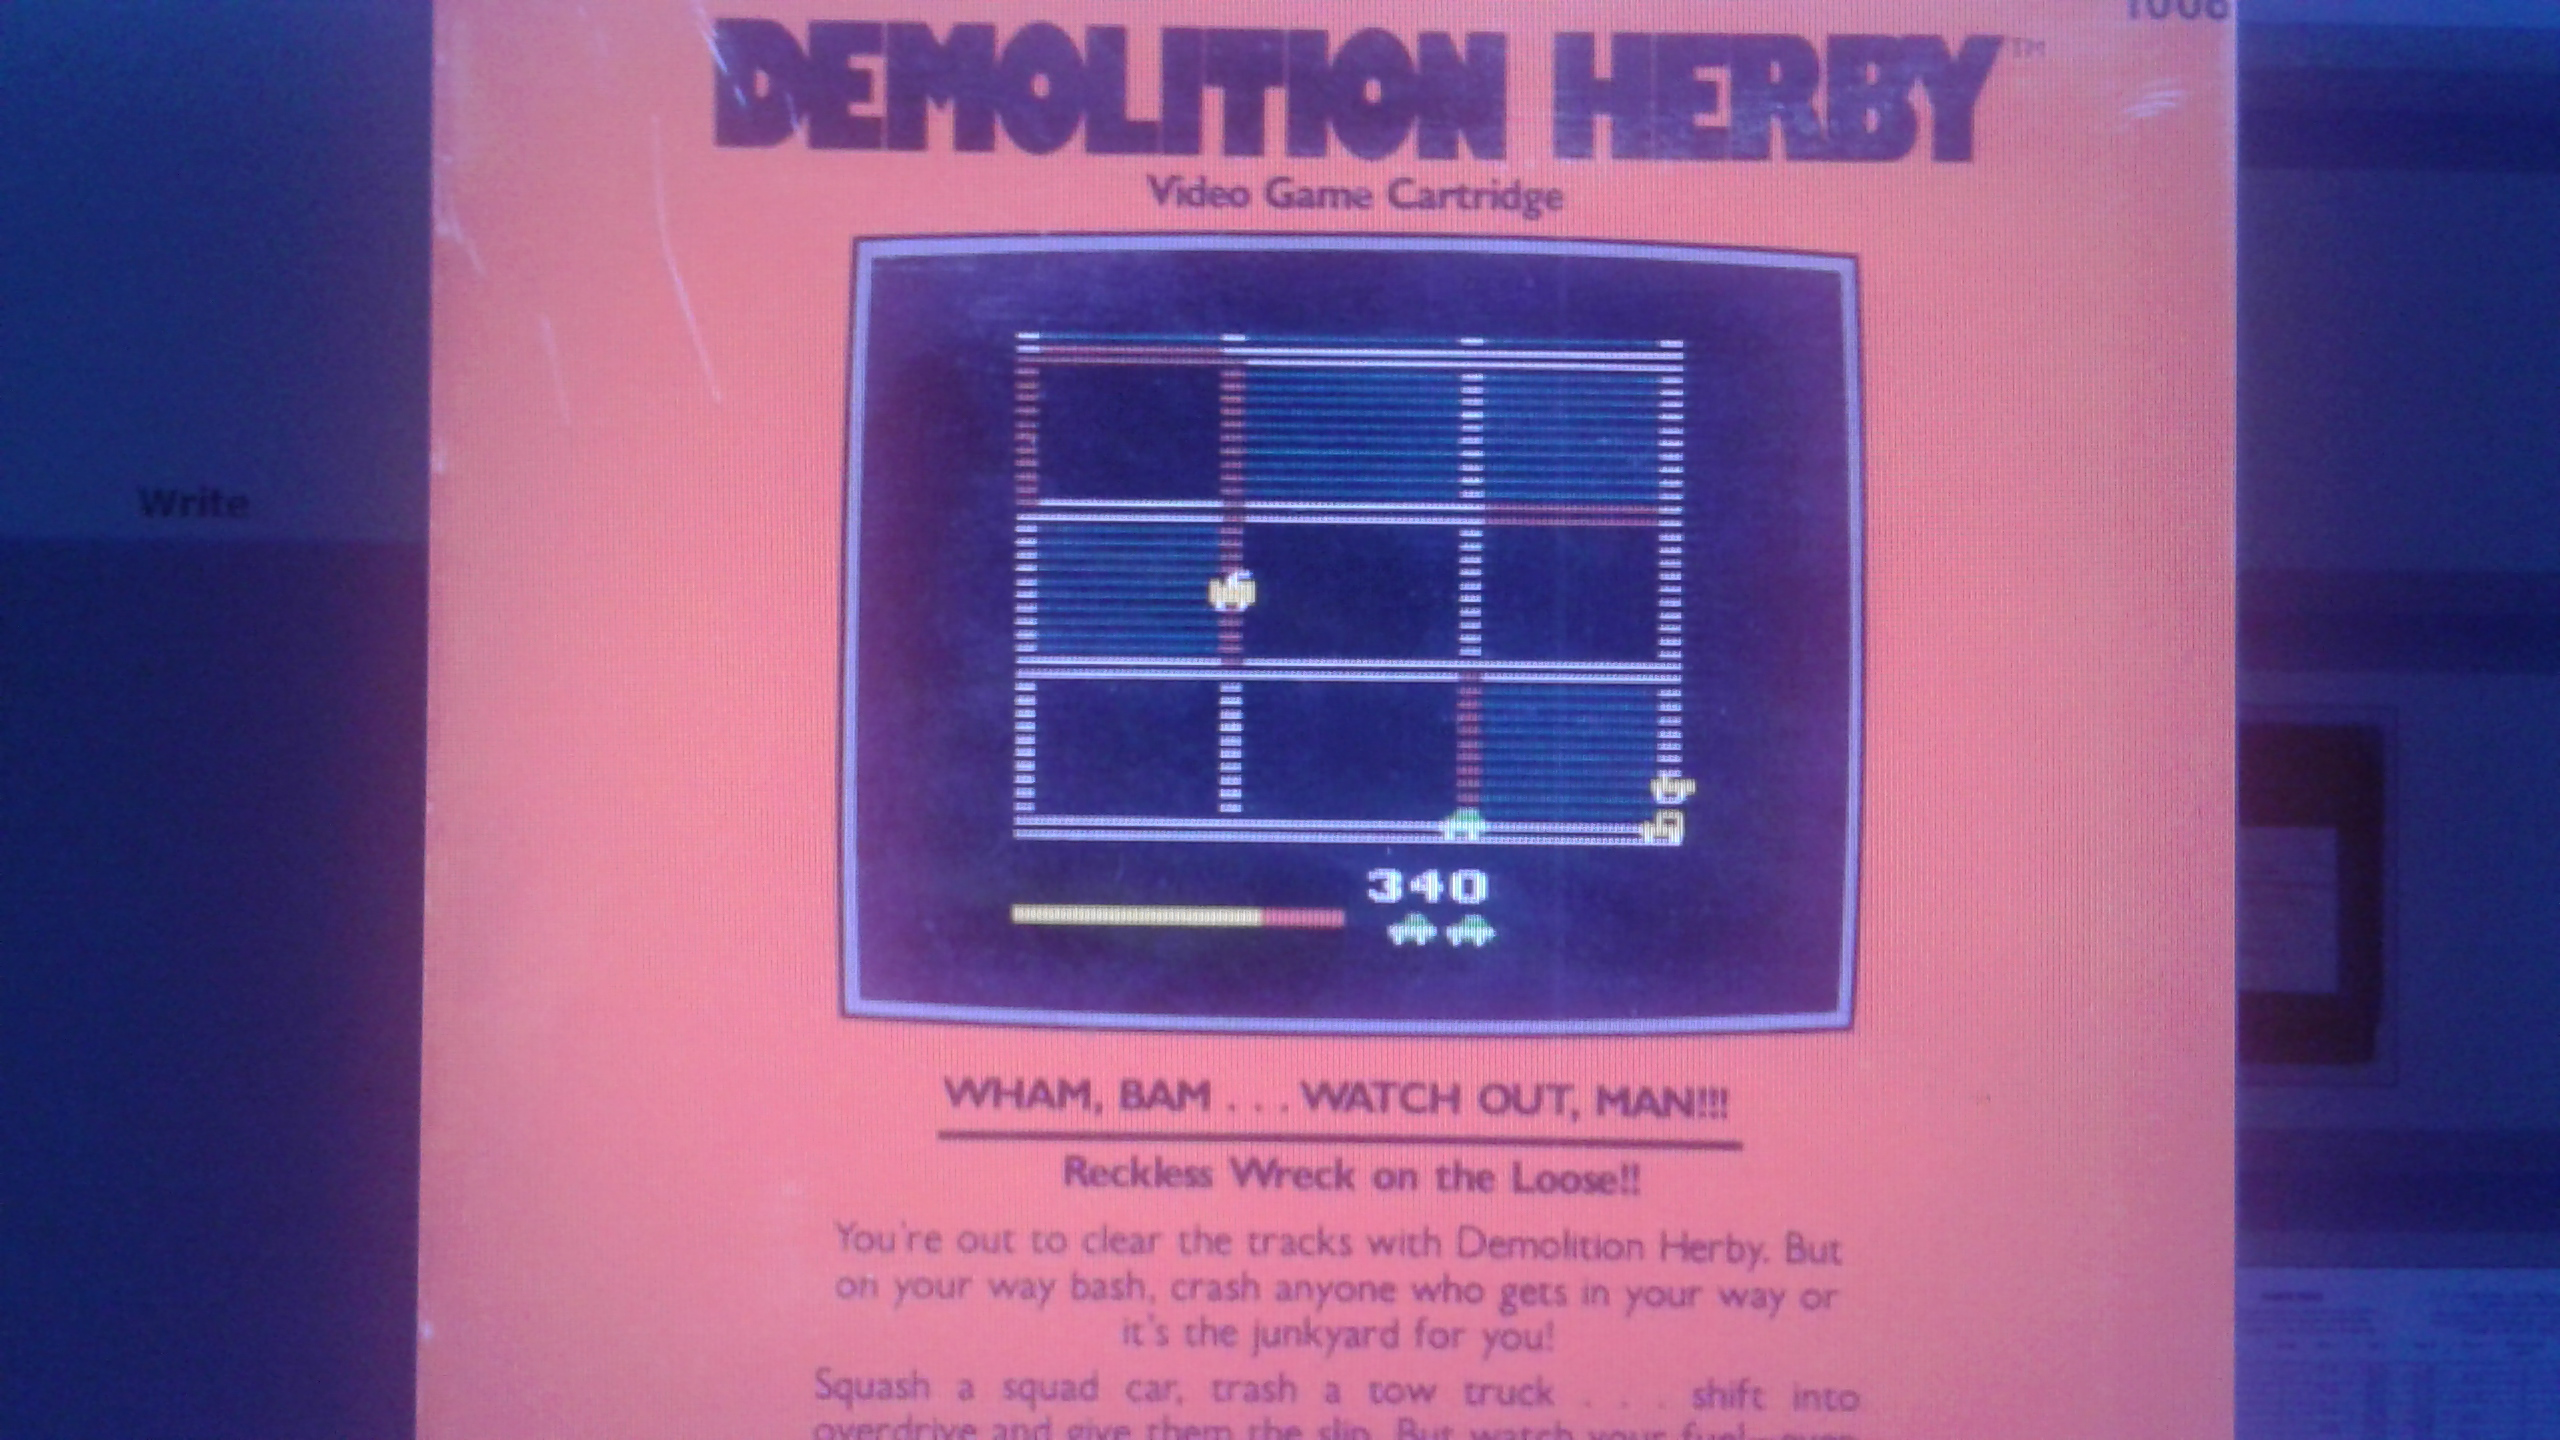 Mark: Demolition Herby (Atari 2600 Emulated) 16,568 points on 2019-03-12 23:45:44